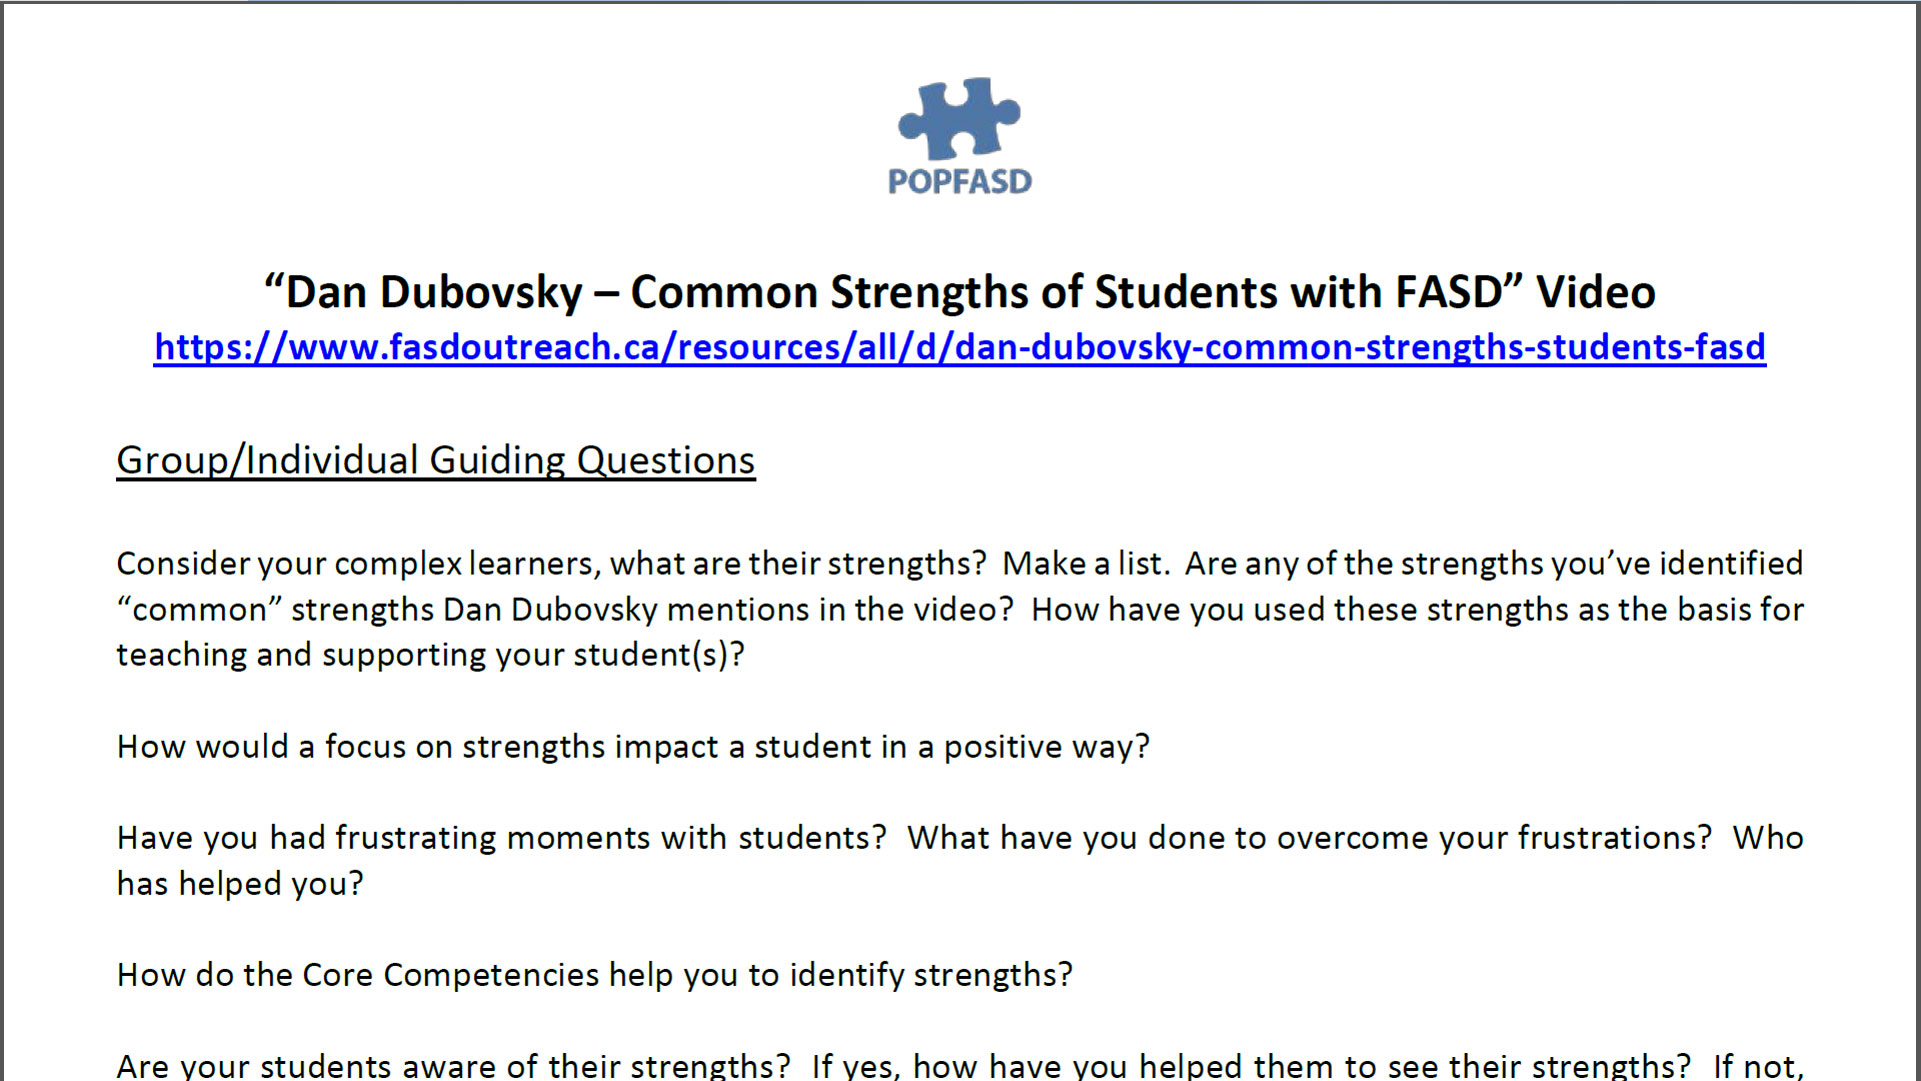 Book and Video Club - Dan Dubovsky Common Strengths of Students with FASD